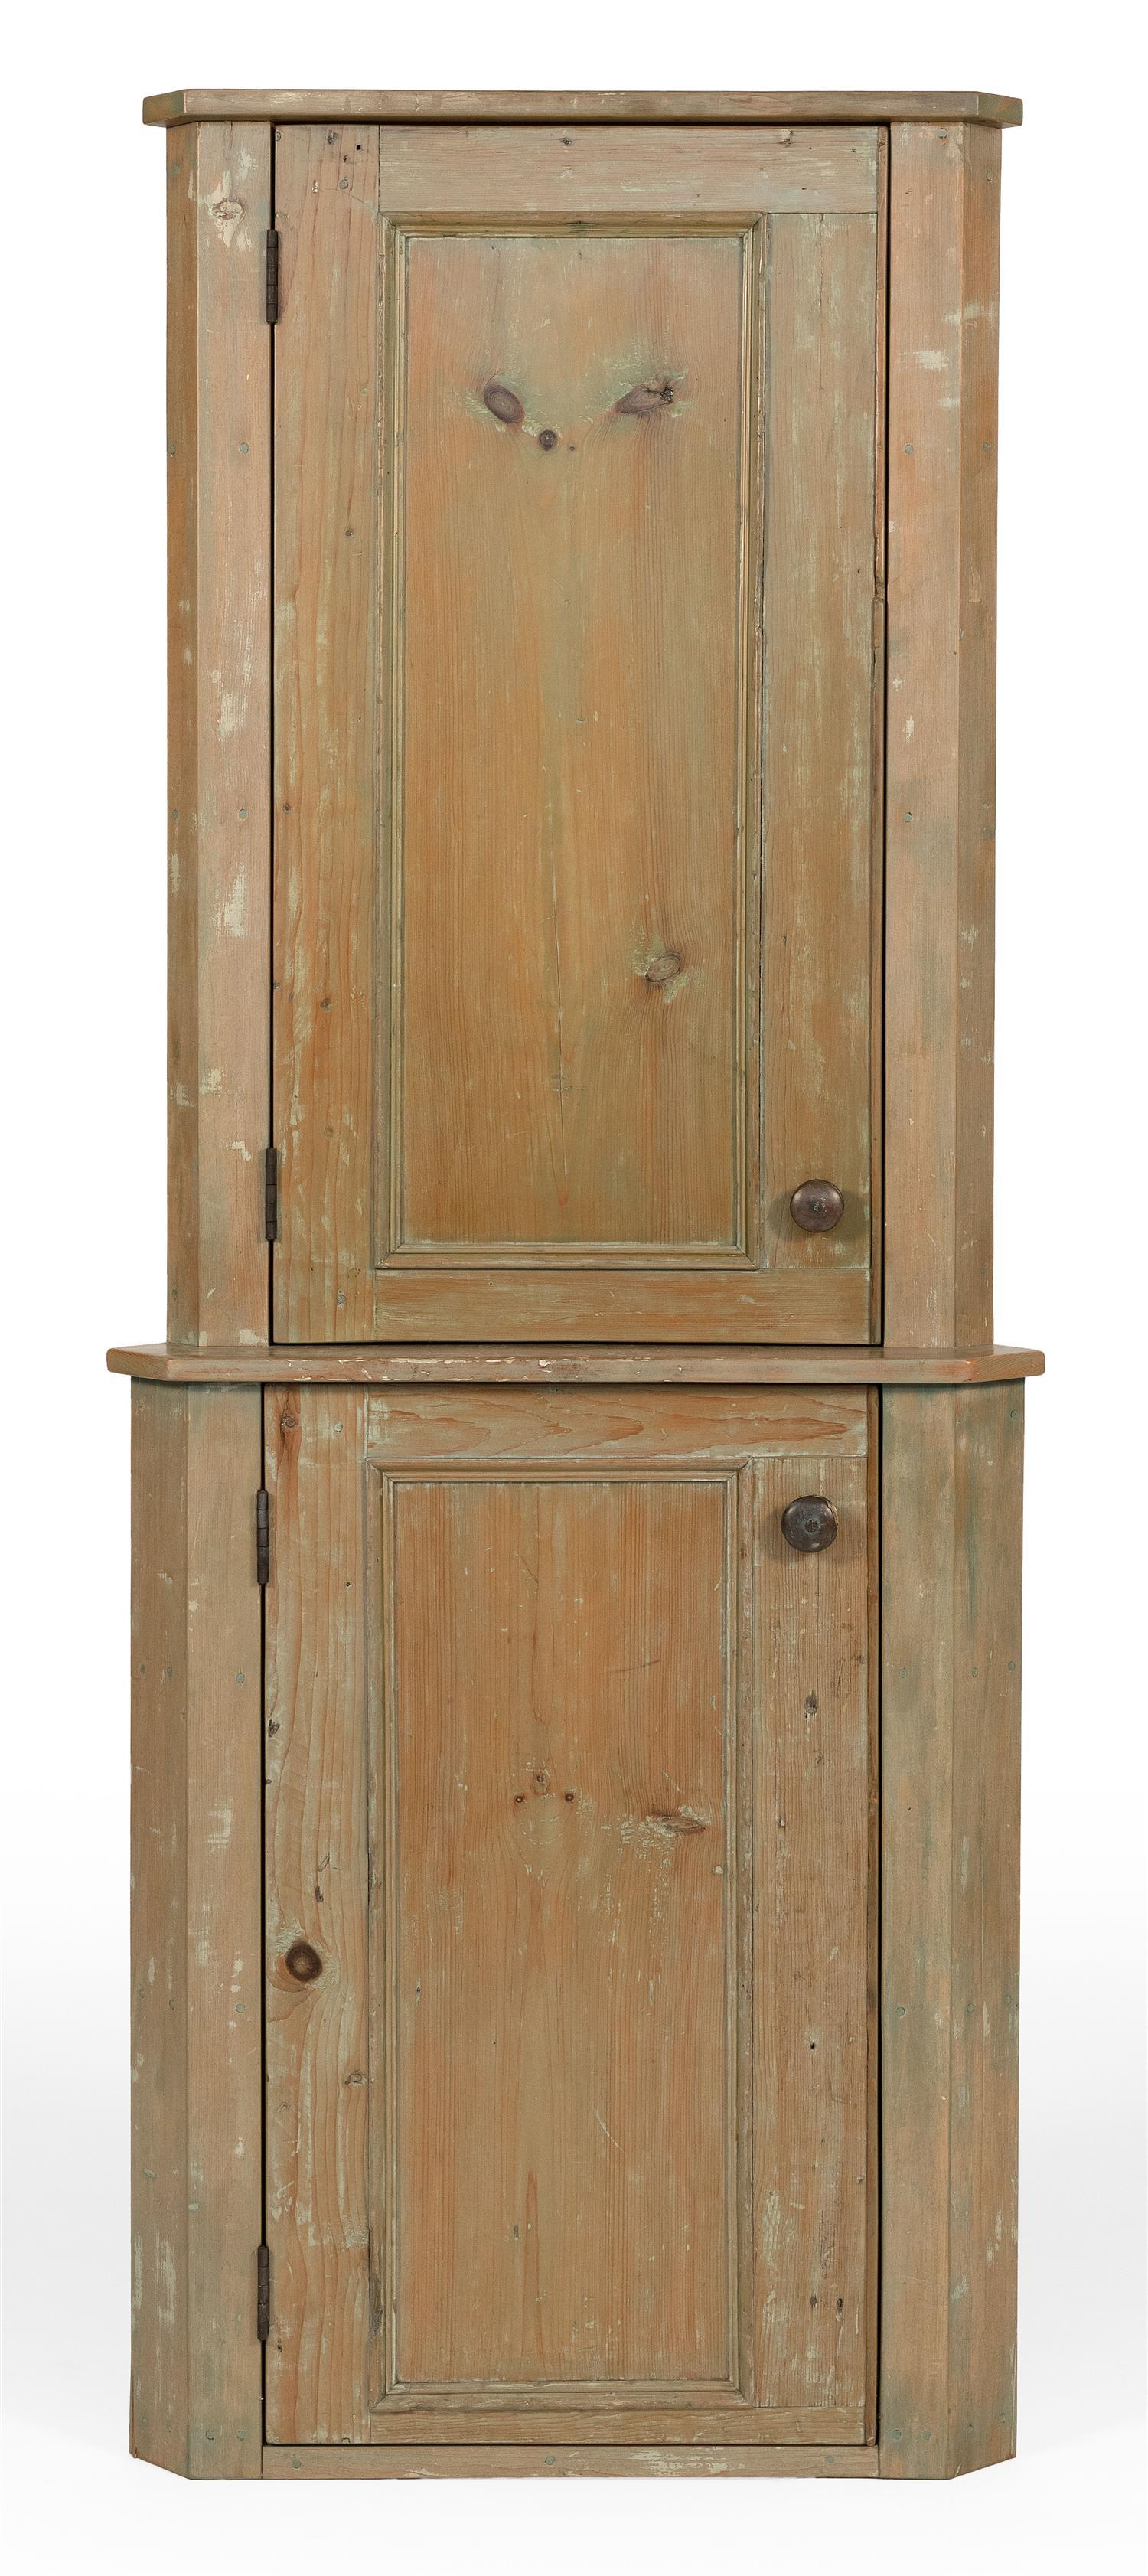 WEST BARNSTABLE TABLE COMPANY CORNER CUPBOARD In pine, under remnants of green paint. One-piece construction. Two paneled doors, bot...